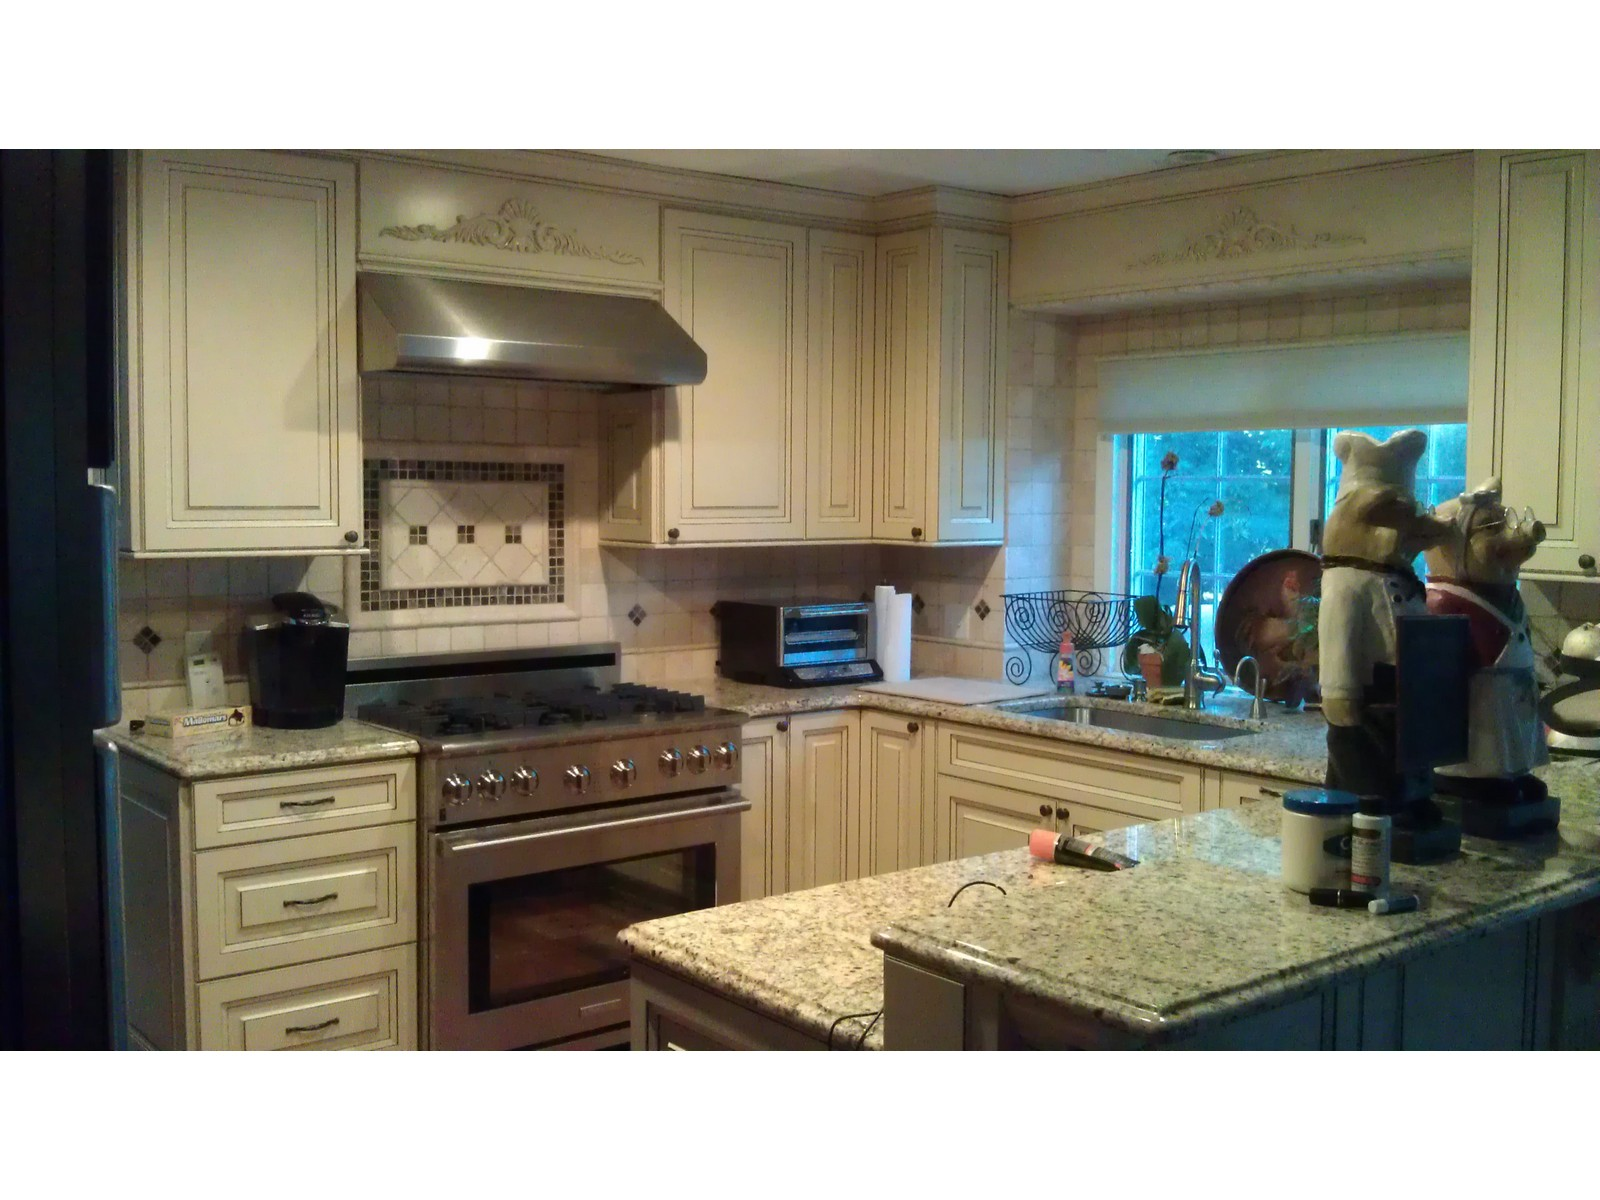 Kitchen cabinets kitchen cabinets by crown molding nj for Modern kitchen cabinets nj